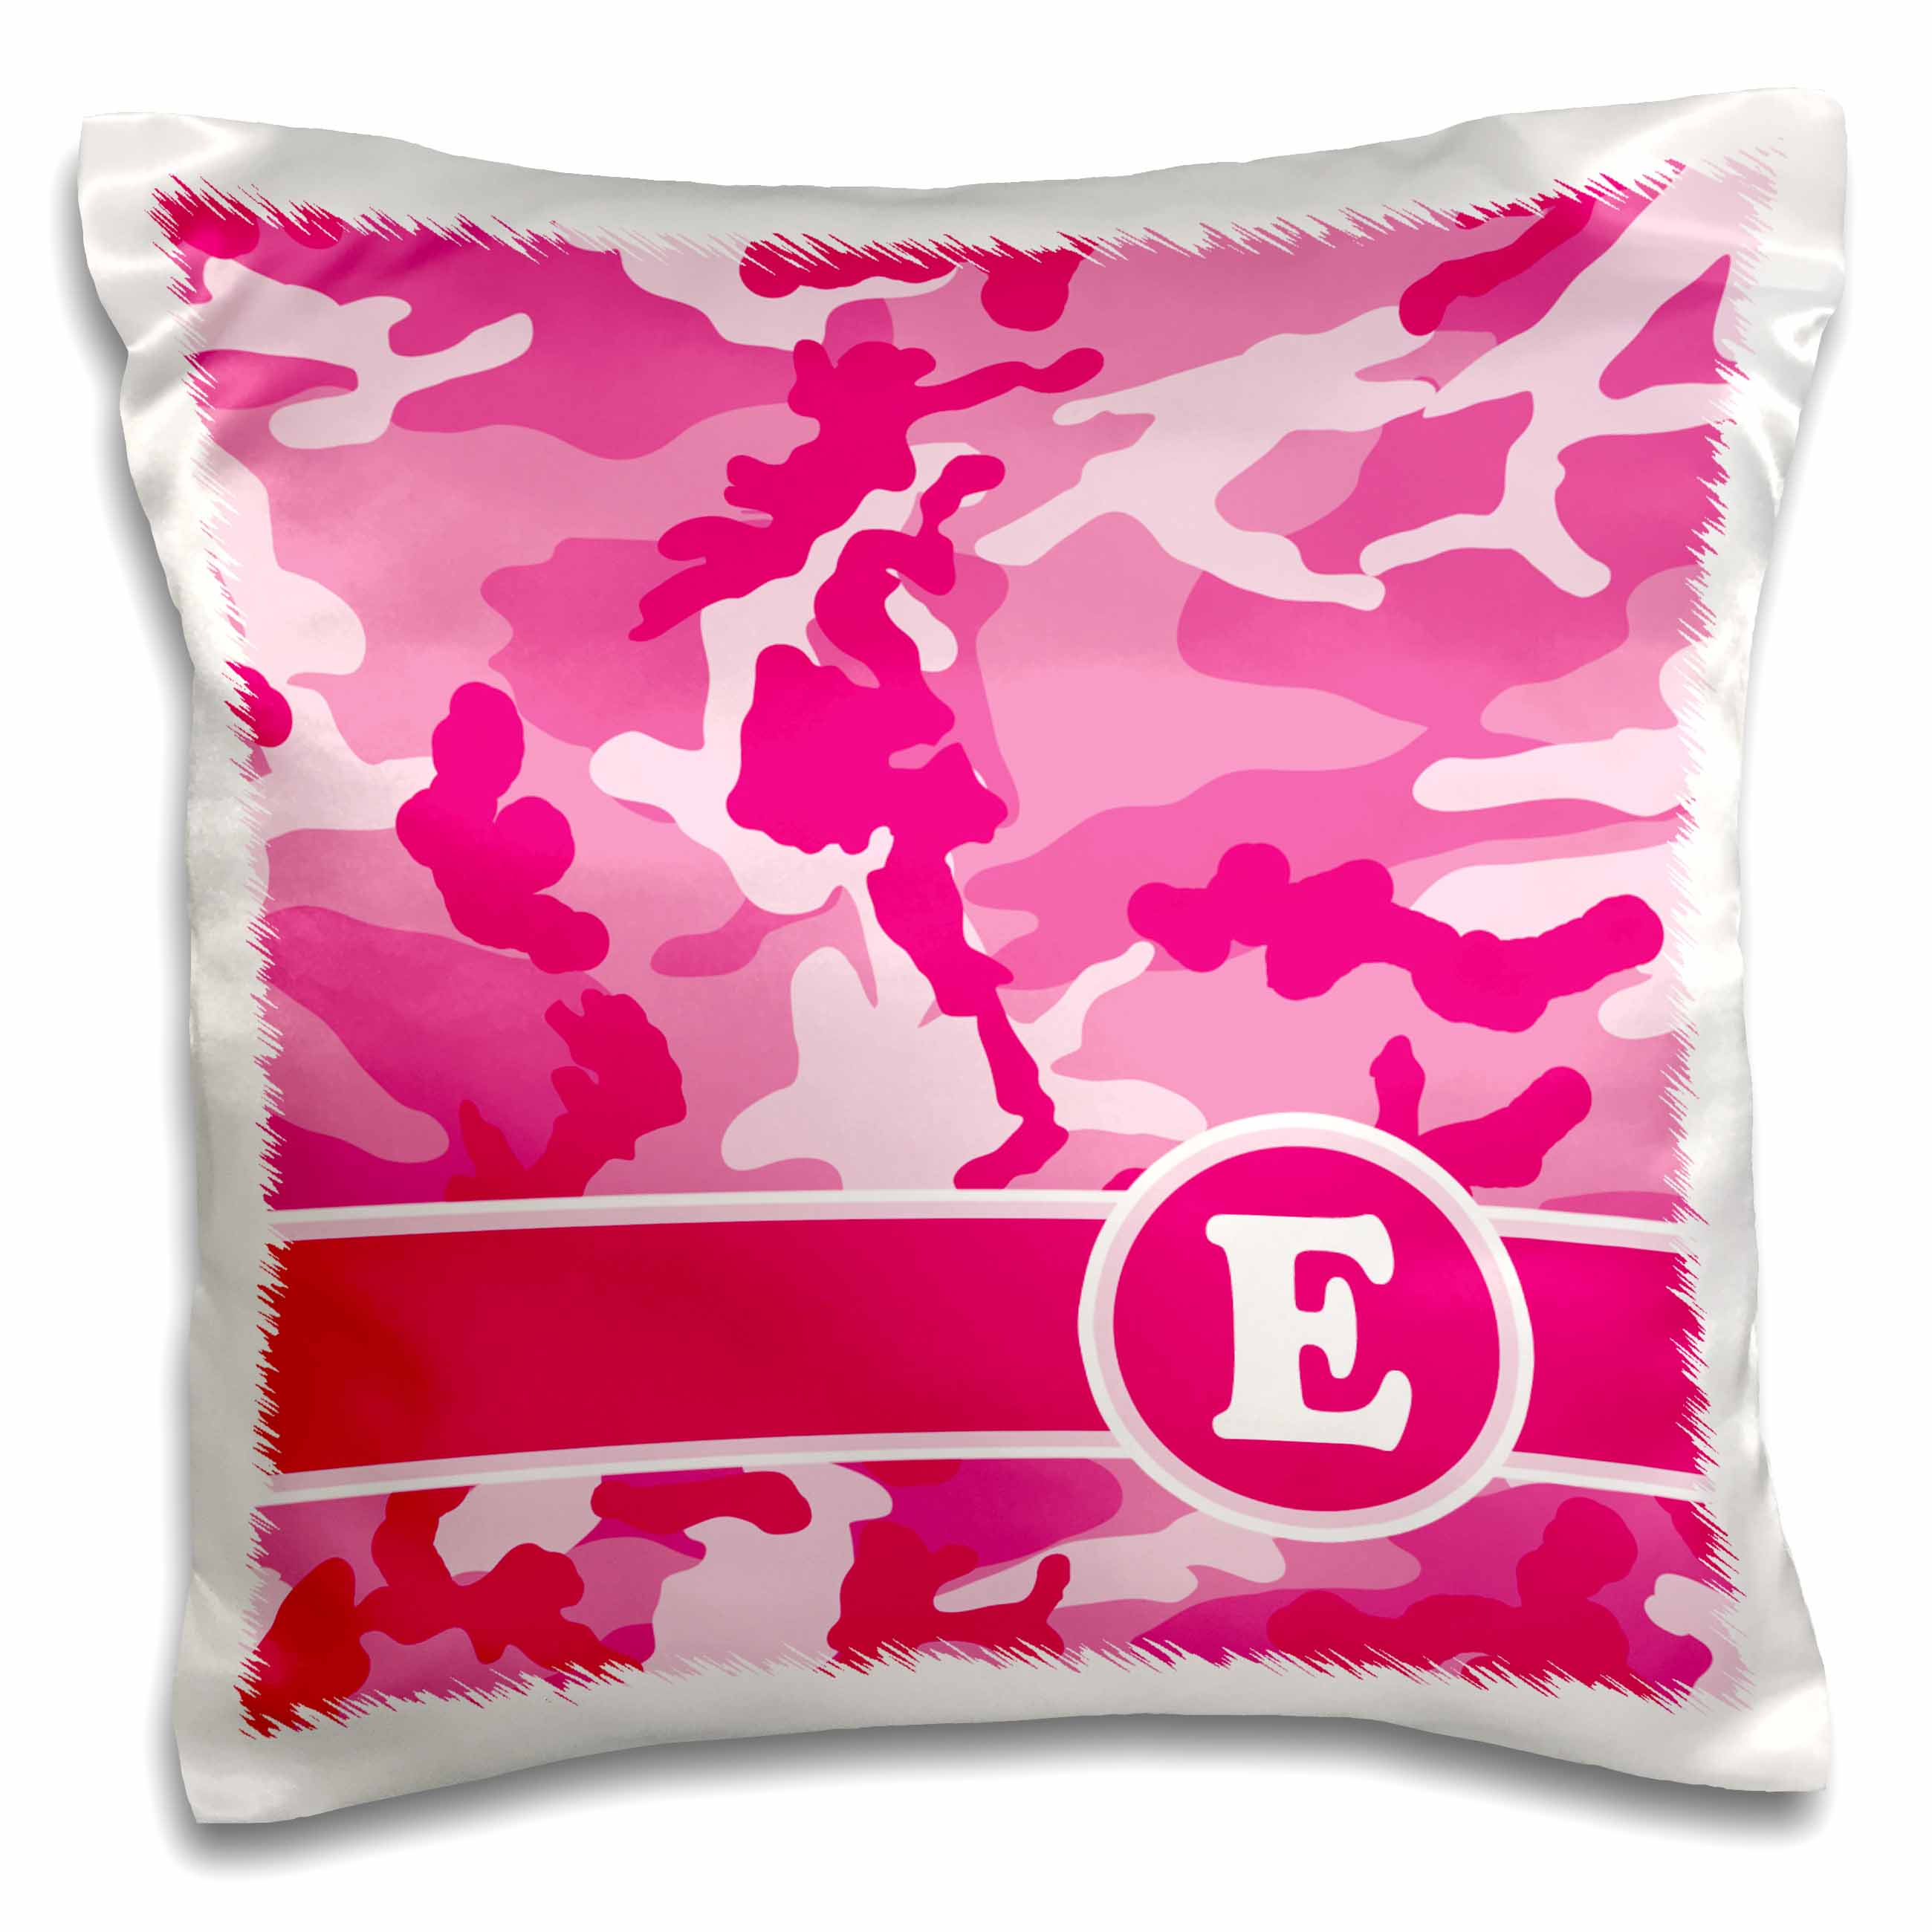 3dRose Cute Pink Camo Camouflage Letter E, Pillow Case, 16 by 16-inch